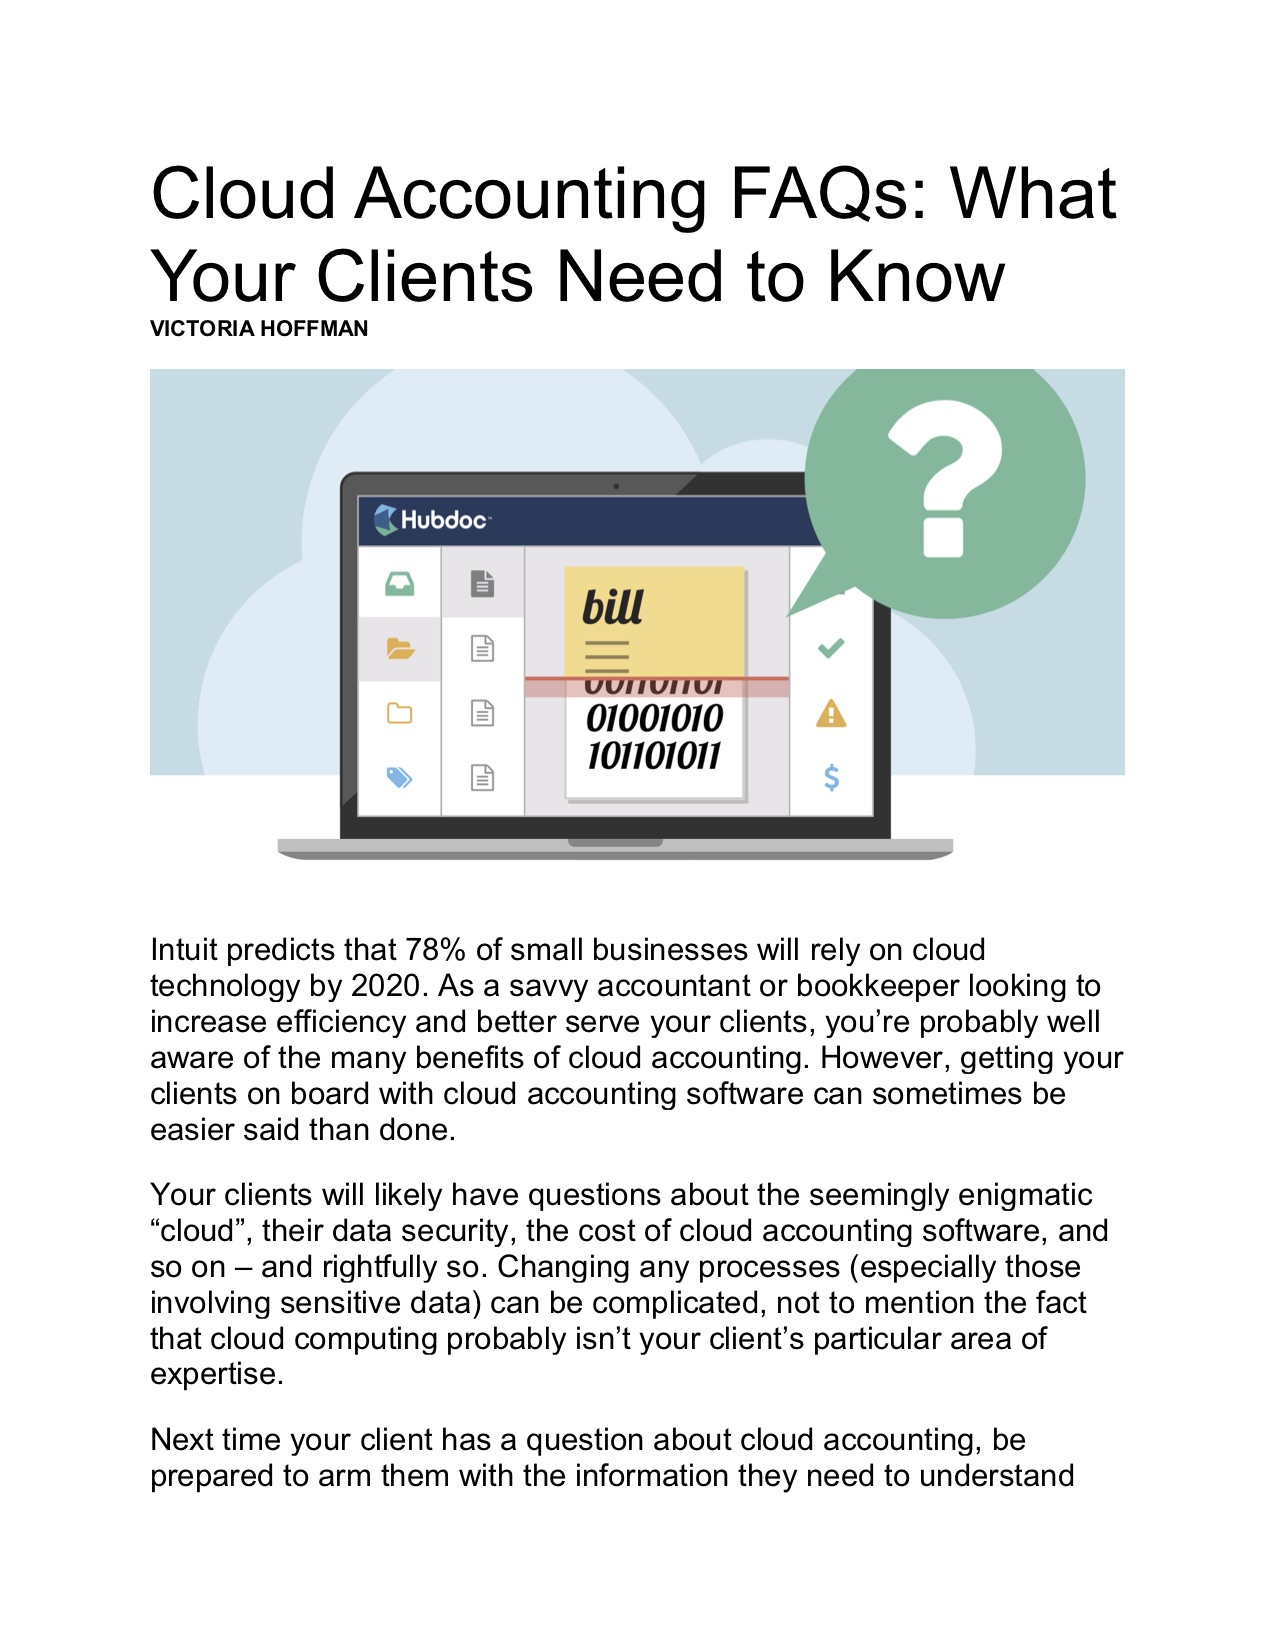 Cloud Accounting FAQs - What Your Clients Need to Know